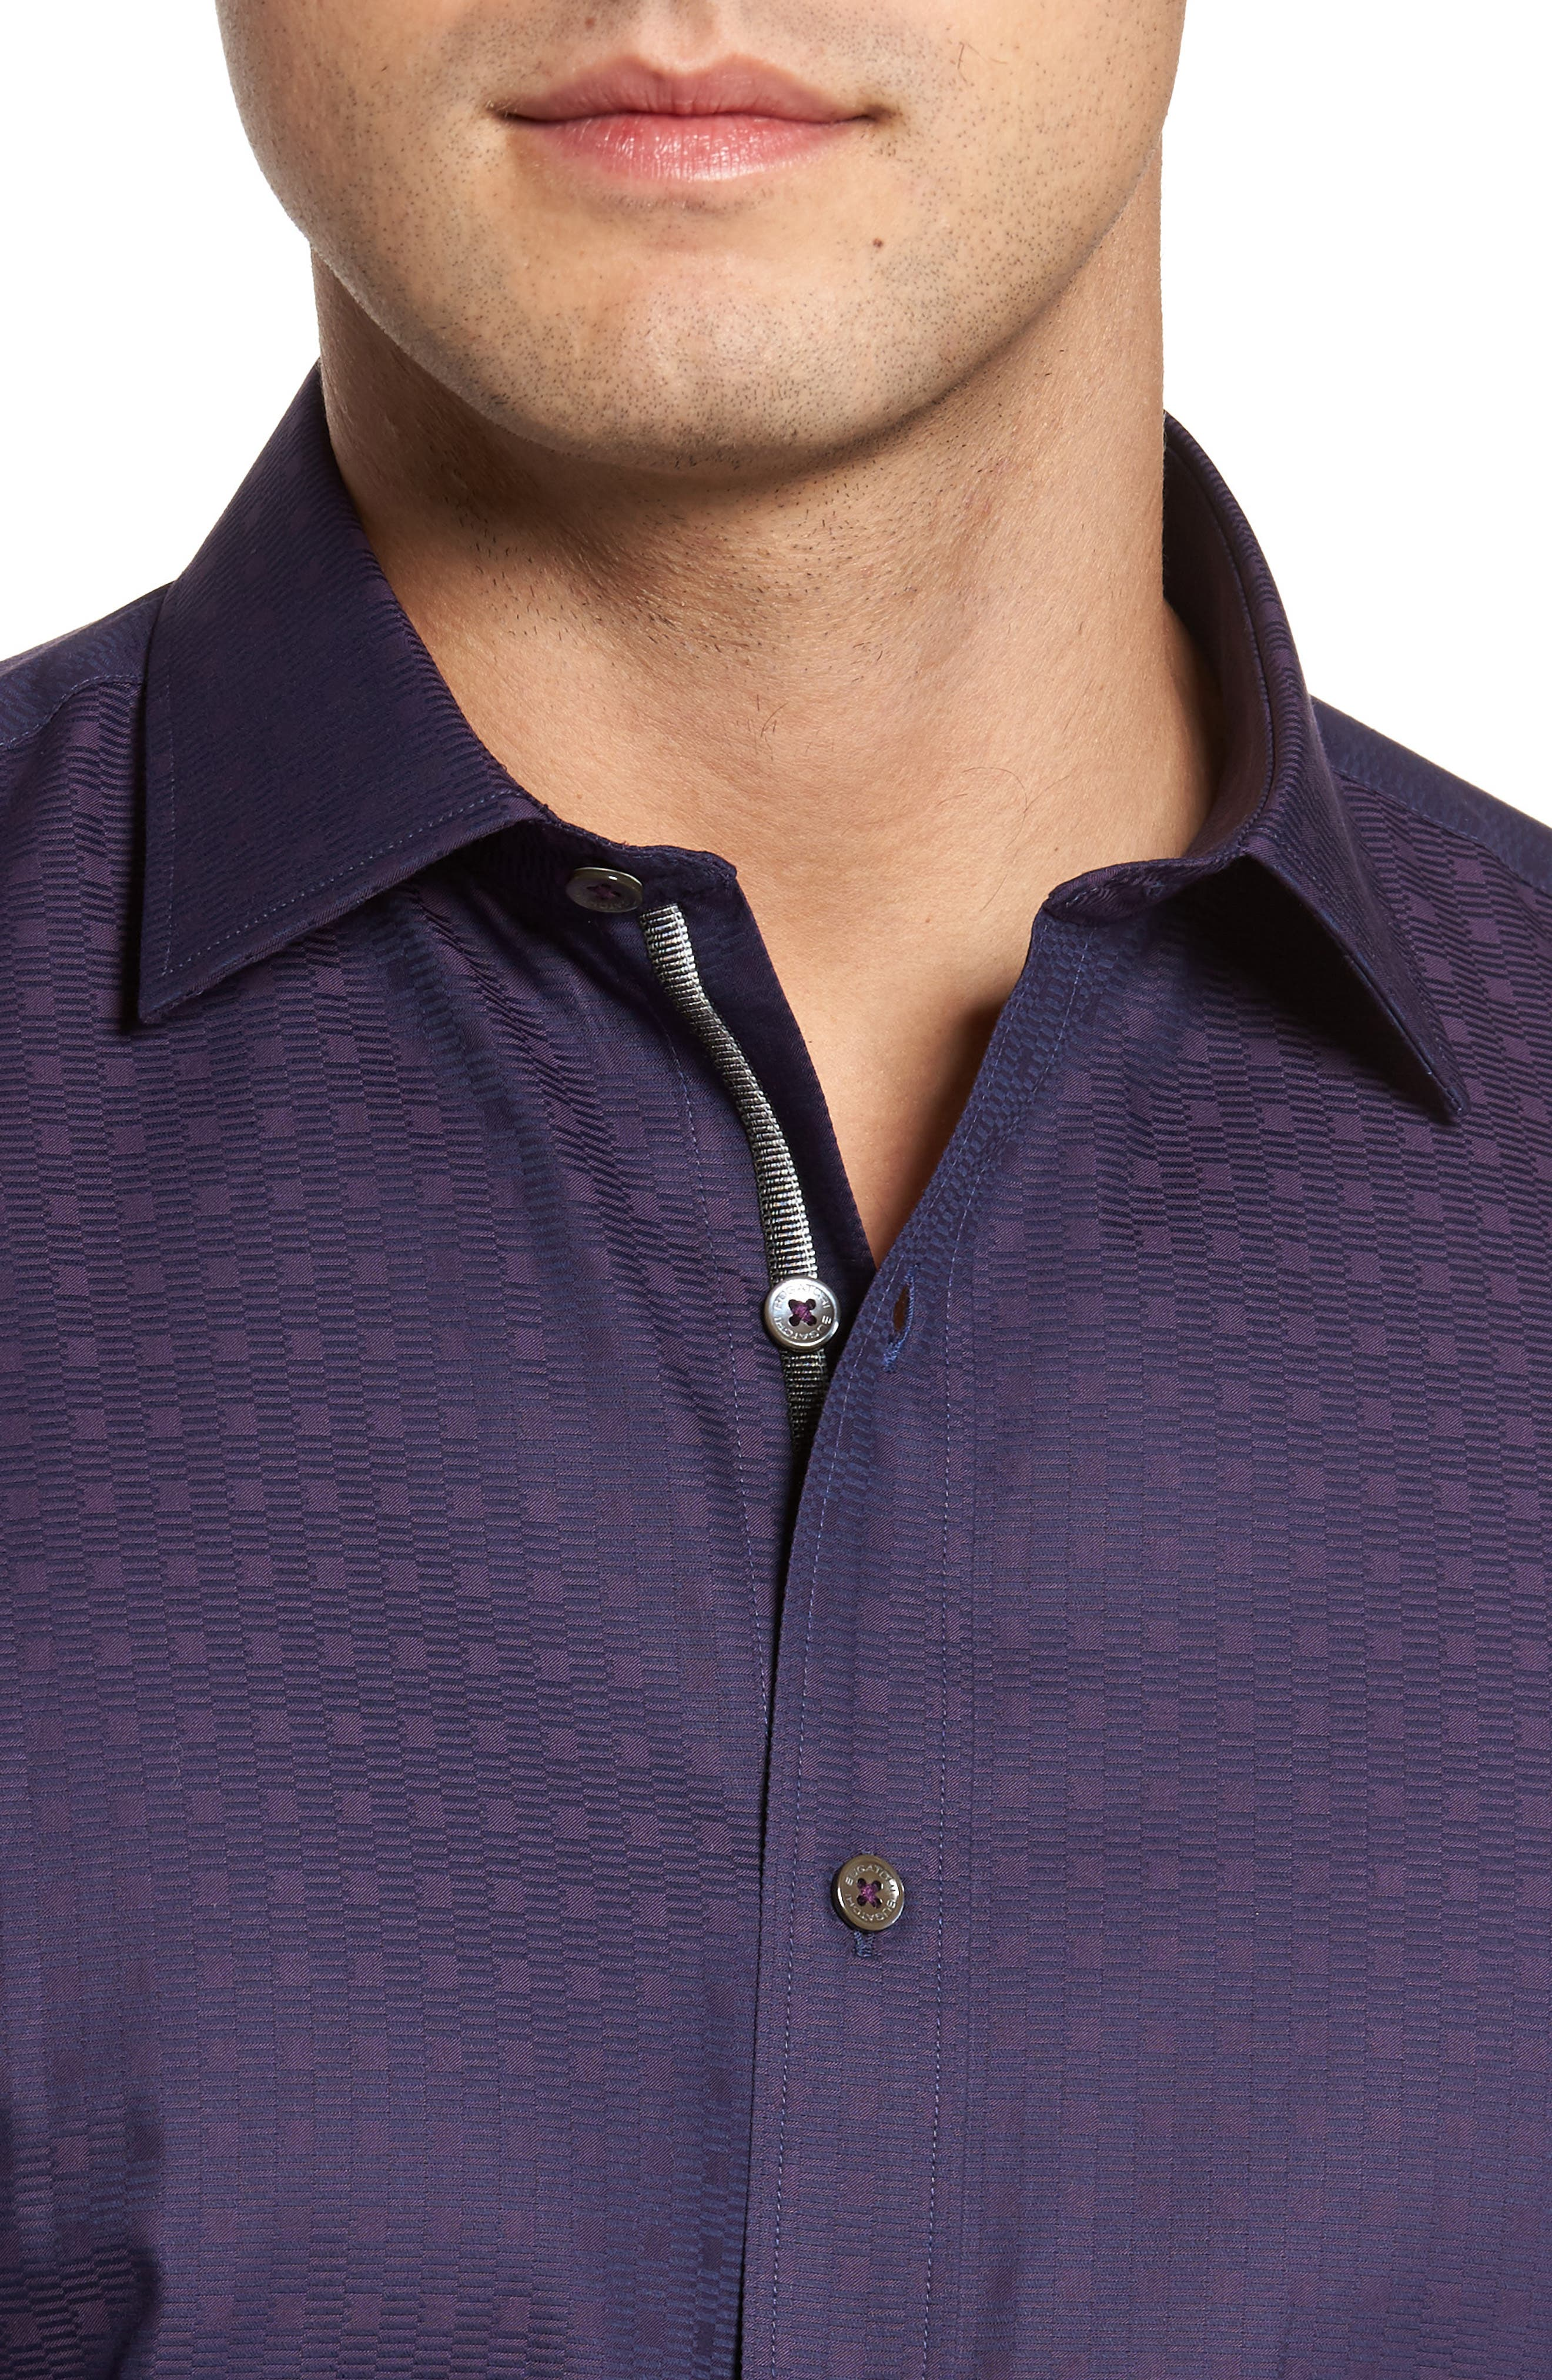 Classic Fit Geo Jacquard Sport Shirt,                             Alternate thumbnail 4, color,                             Plum